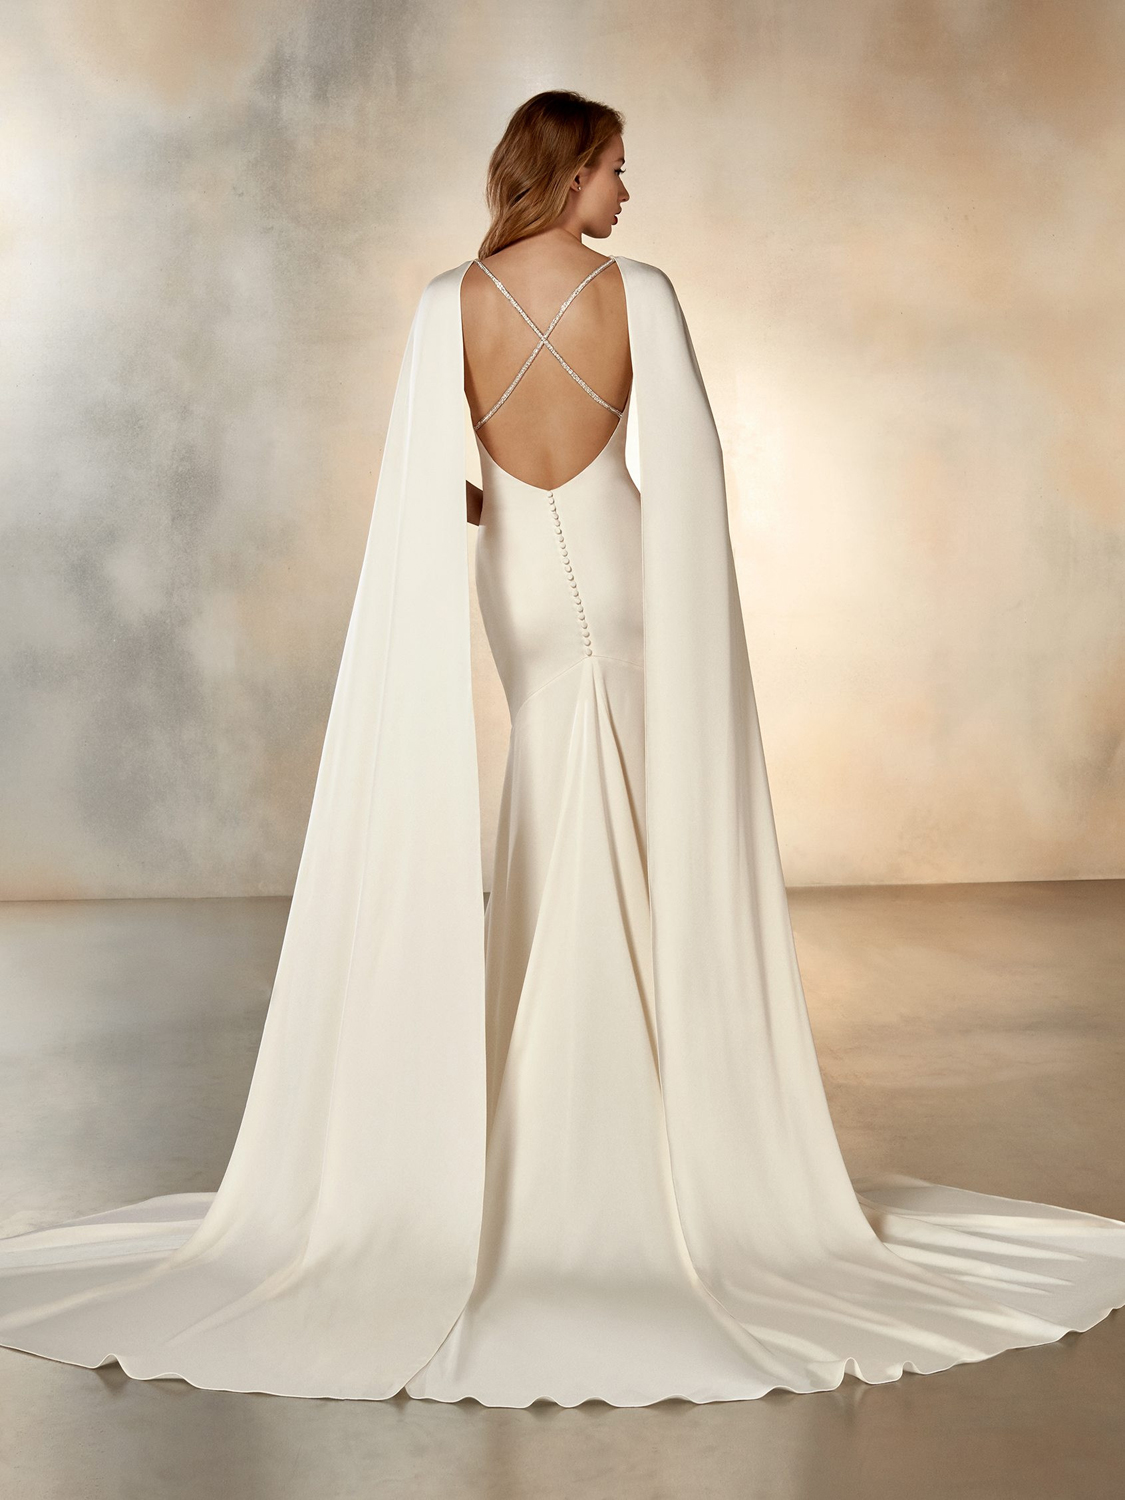 Atelier_Pronovias_2020_collection_wedding_dress__with-cape_moonlight_back_View.jpg